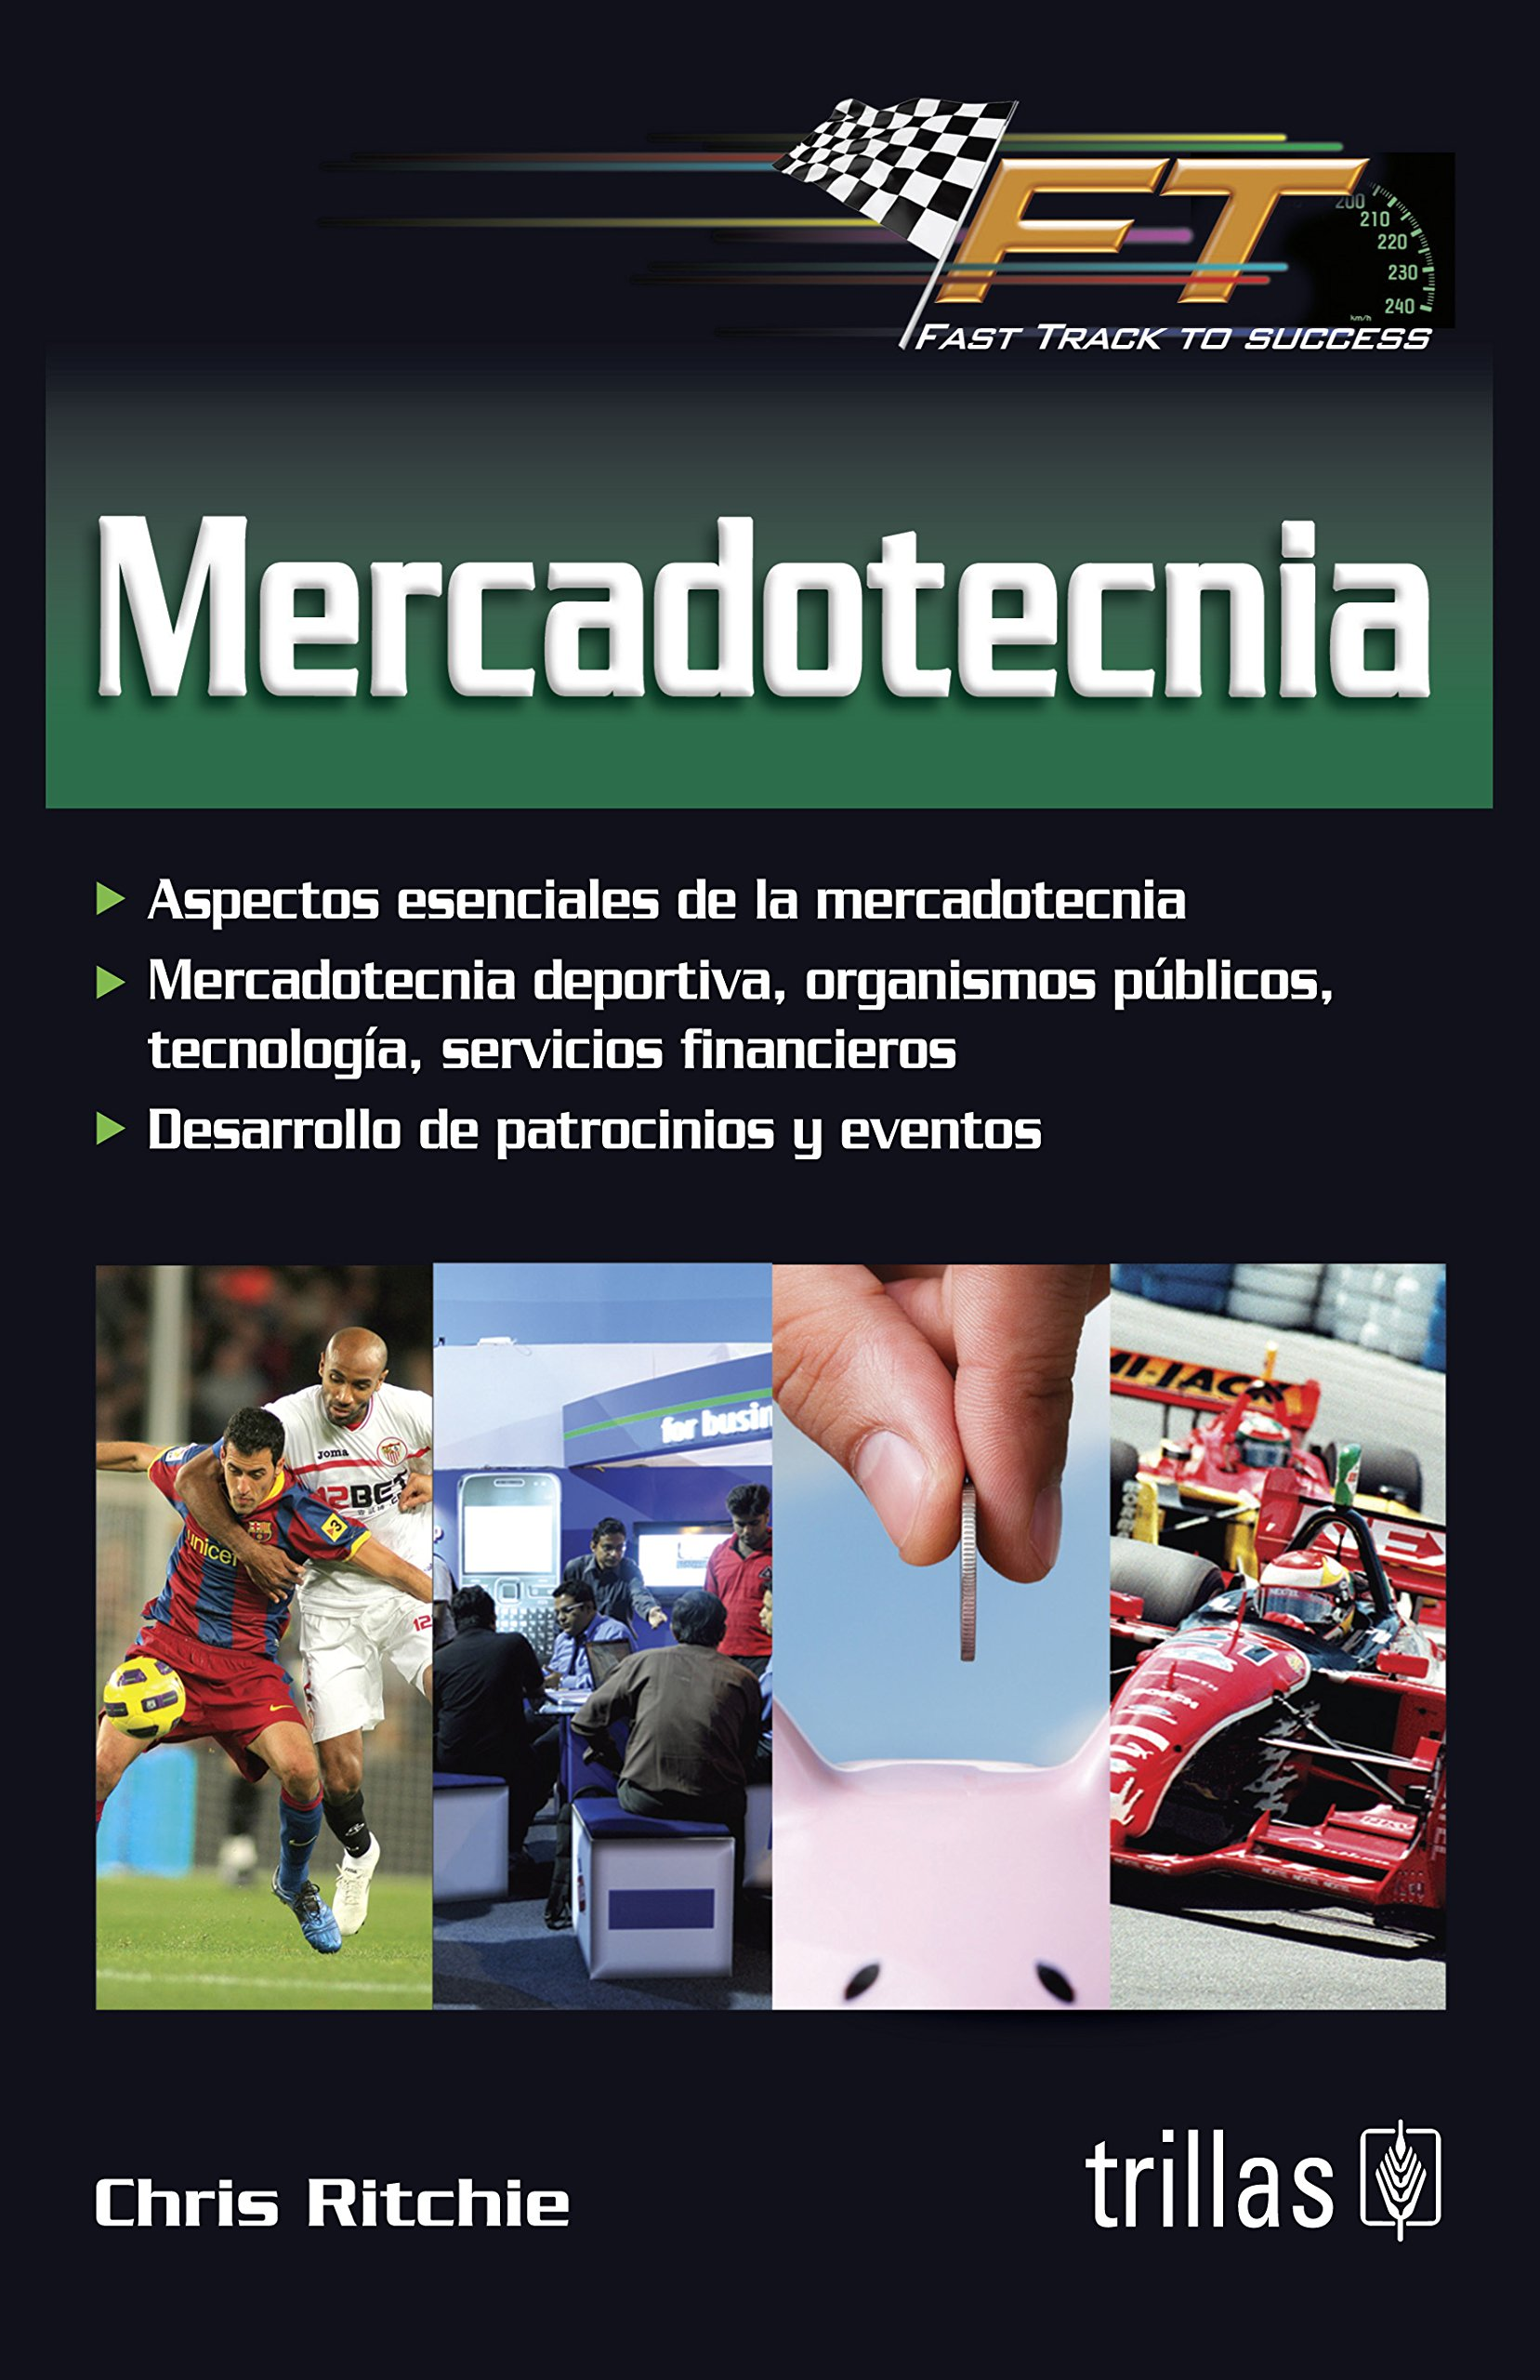 MERCADOTECNIA: CHRIS RITCHIE: 9786071710543: Amazon.com: Books